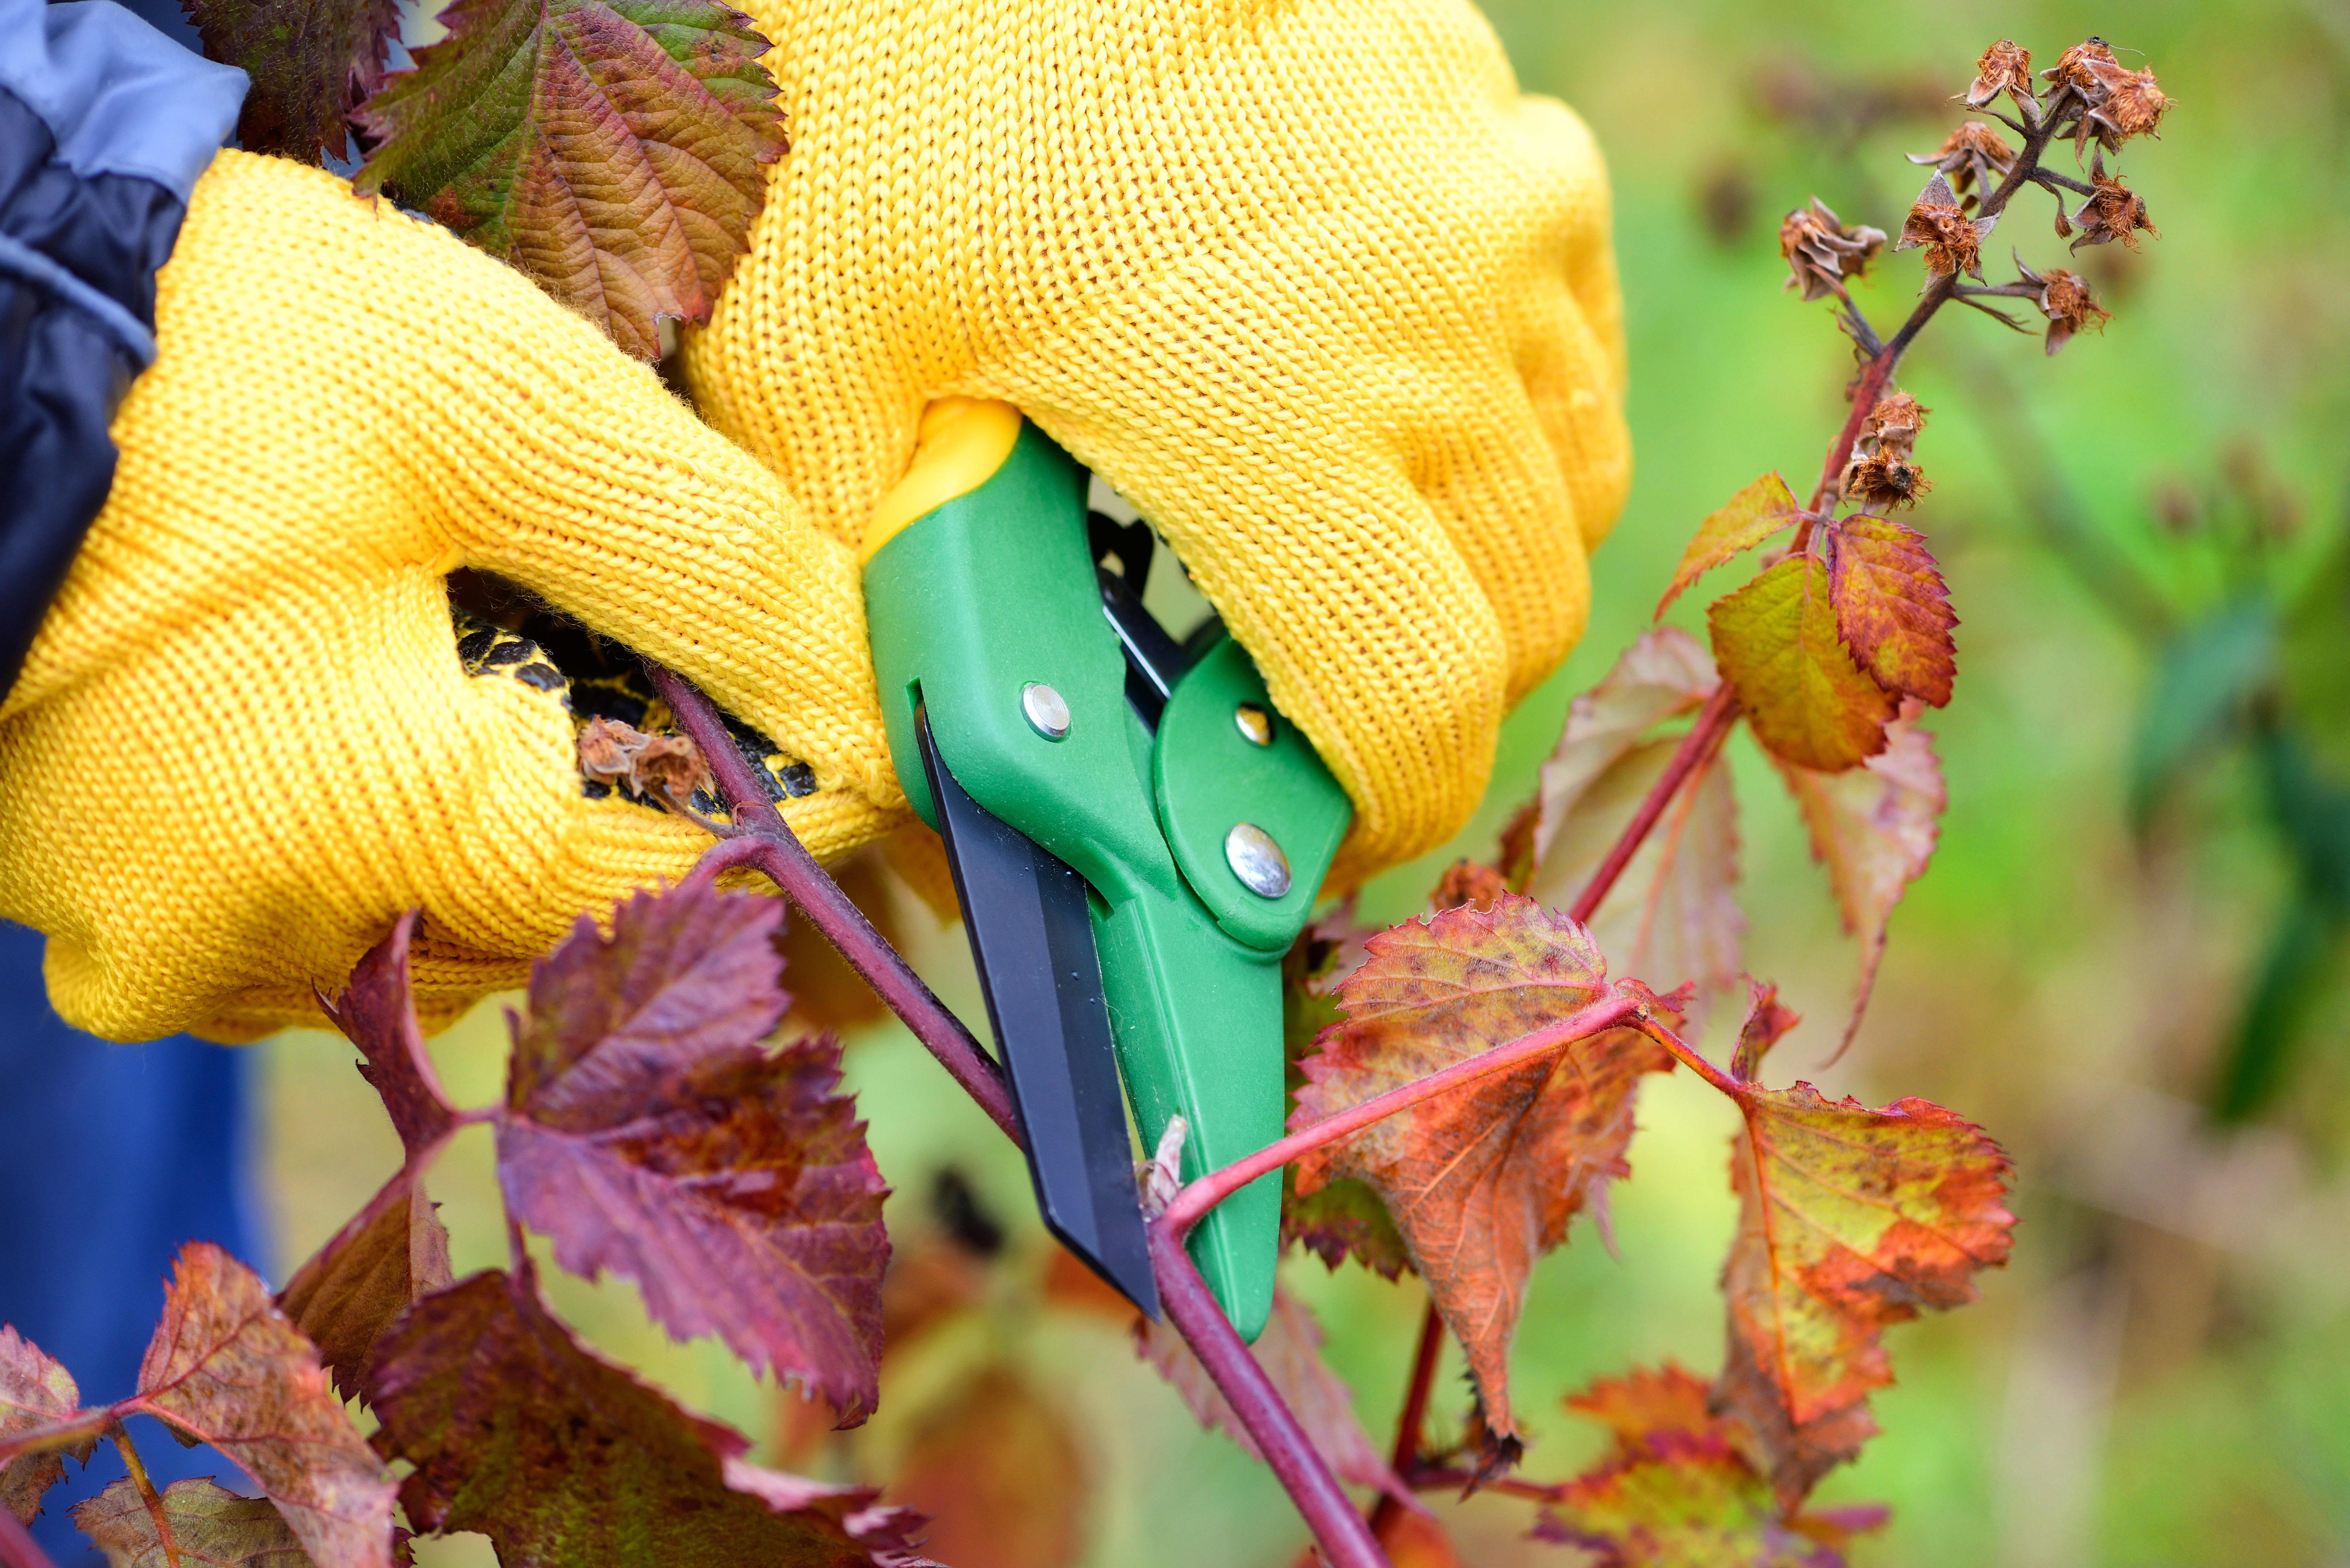 Hands with gardening gloves performing winter shrub care